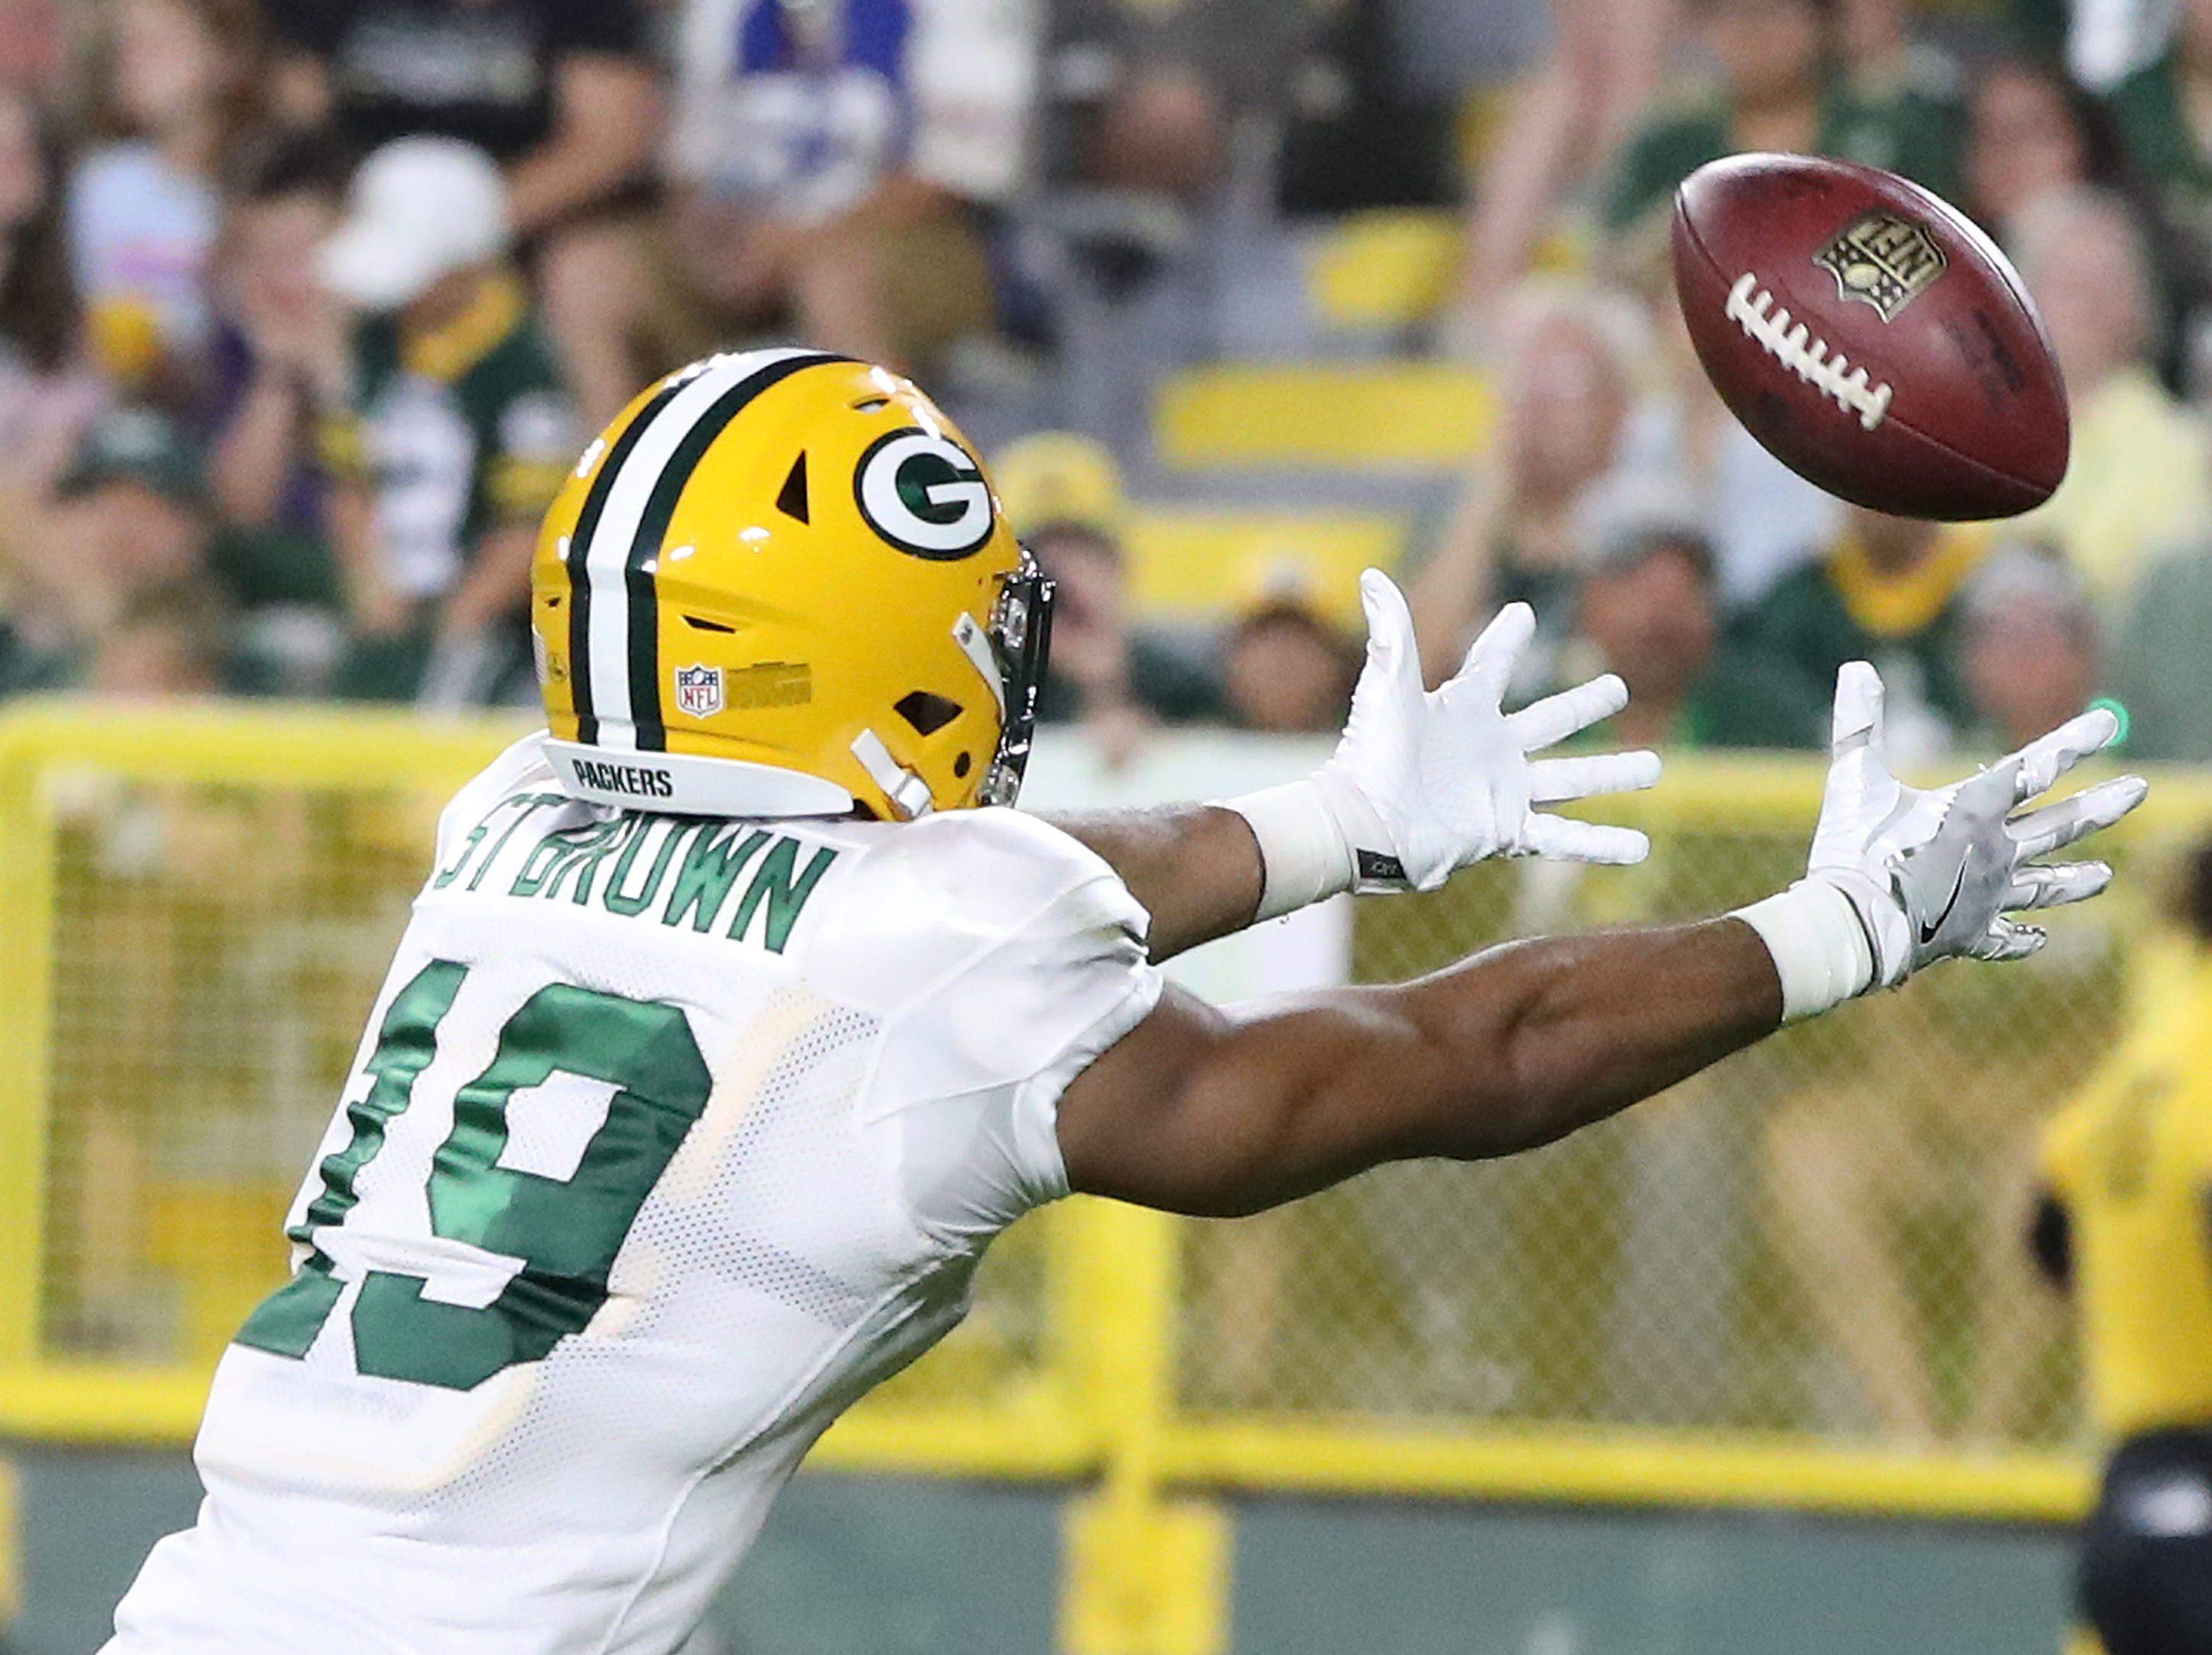 Green Bay Packers wide receiver Equanimeous St. Brown (19) stretched for a pass during Green Bay Packers Family Night  Saturday, August 4, 2018 at Lambeau Field in Green Bay, Wis.,